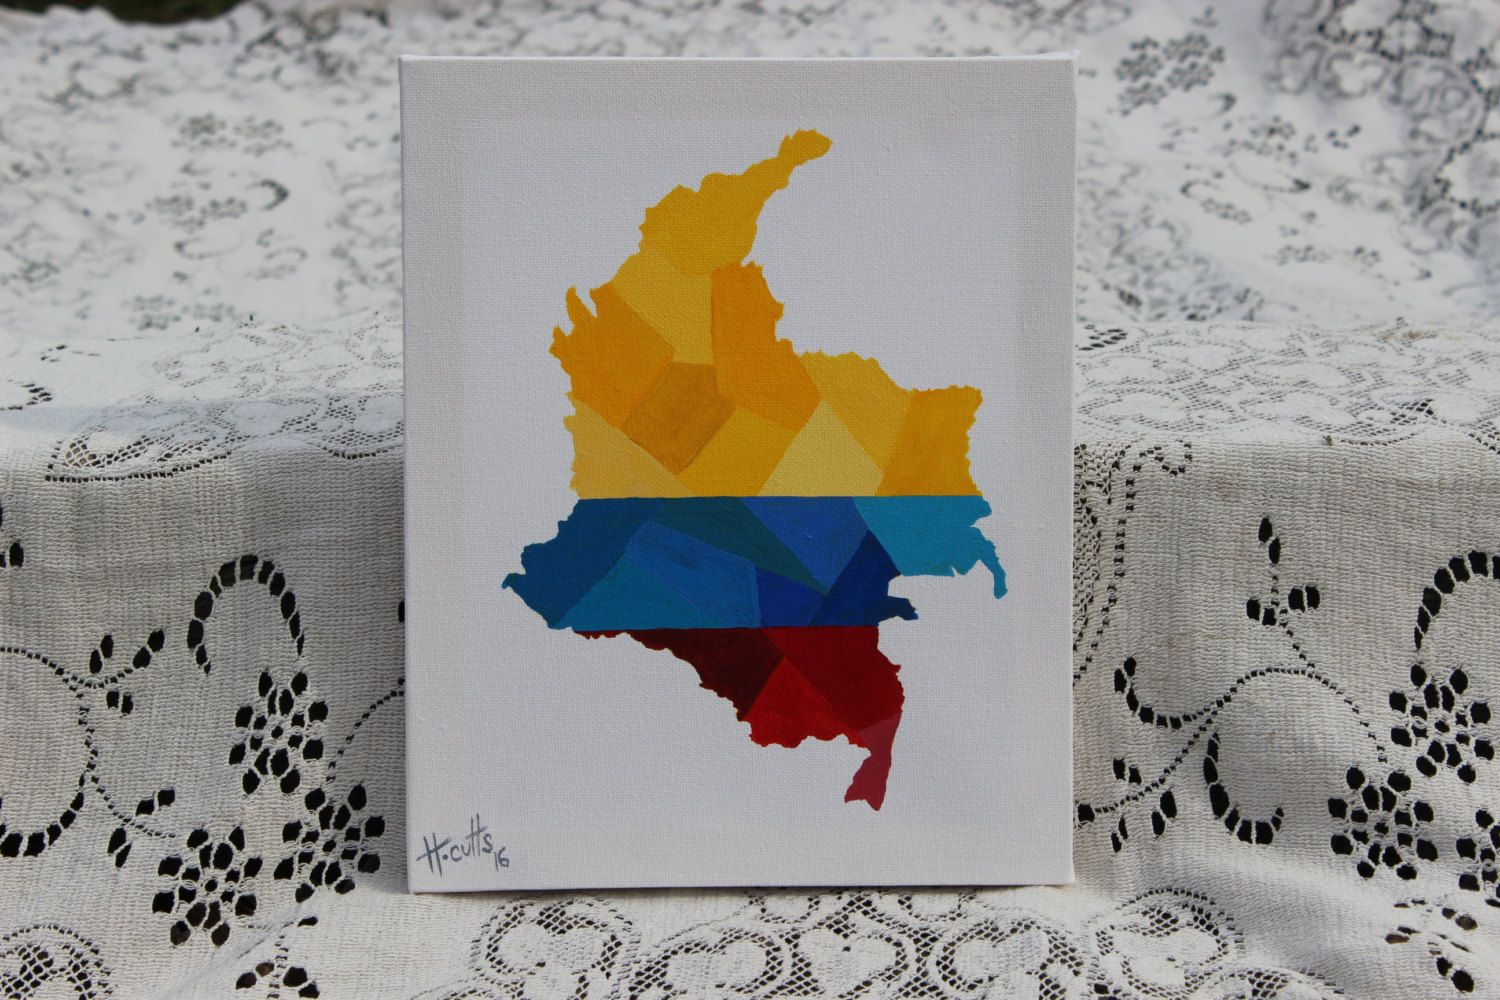 Colombia On World Map%0A Colombia Country Map Painting  Map and Flag of Colombia  Acrylic on Canvas   Wall